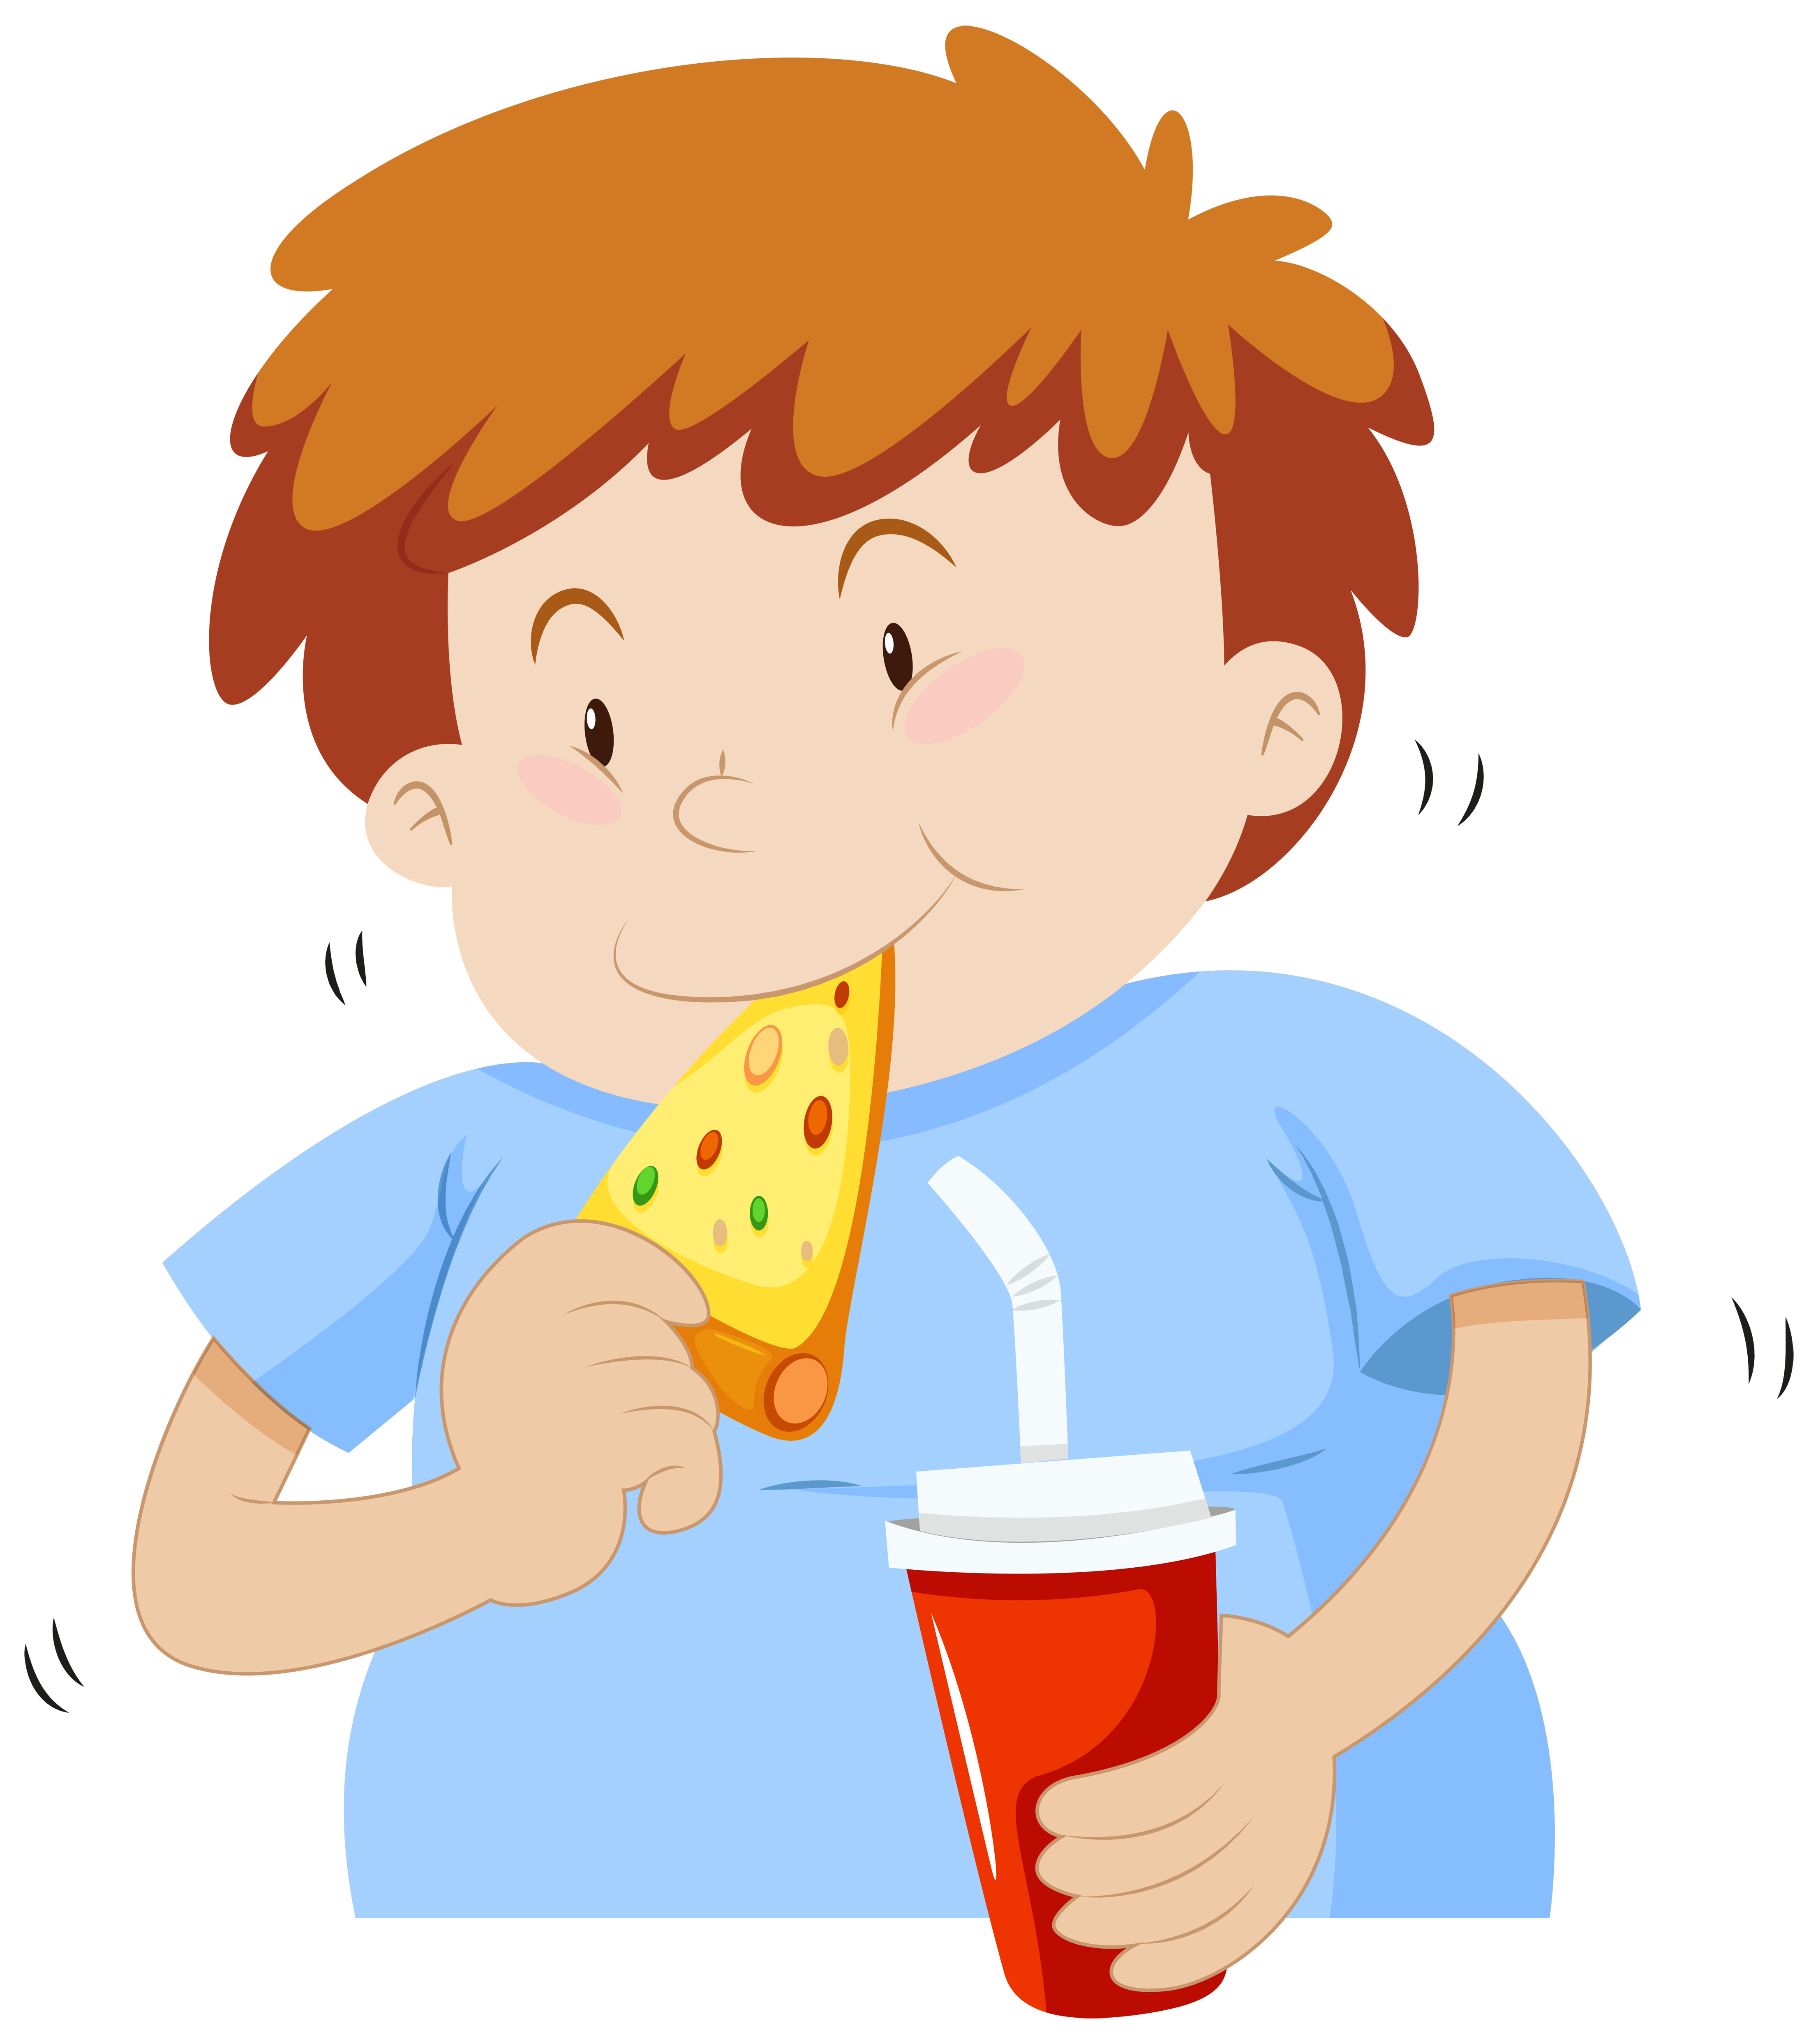 Cartoon Clipart Picture Of Two Children Eating Pizza - foodclipart.com